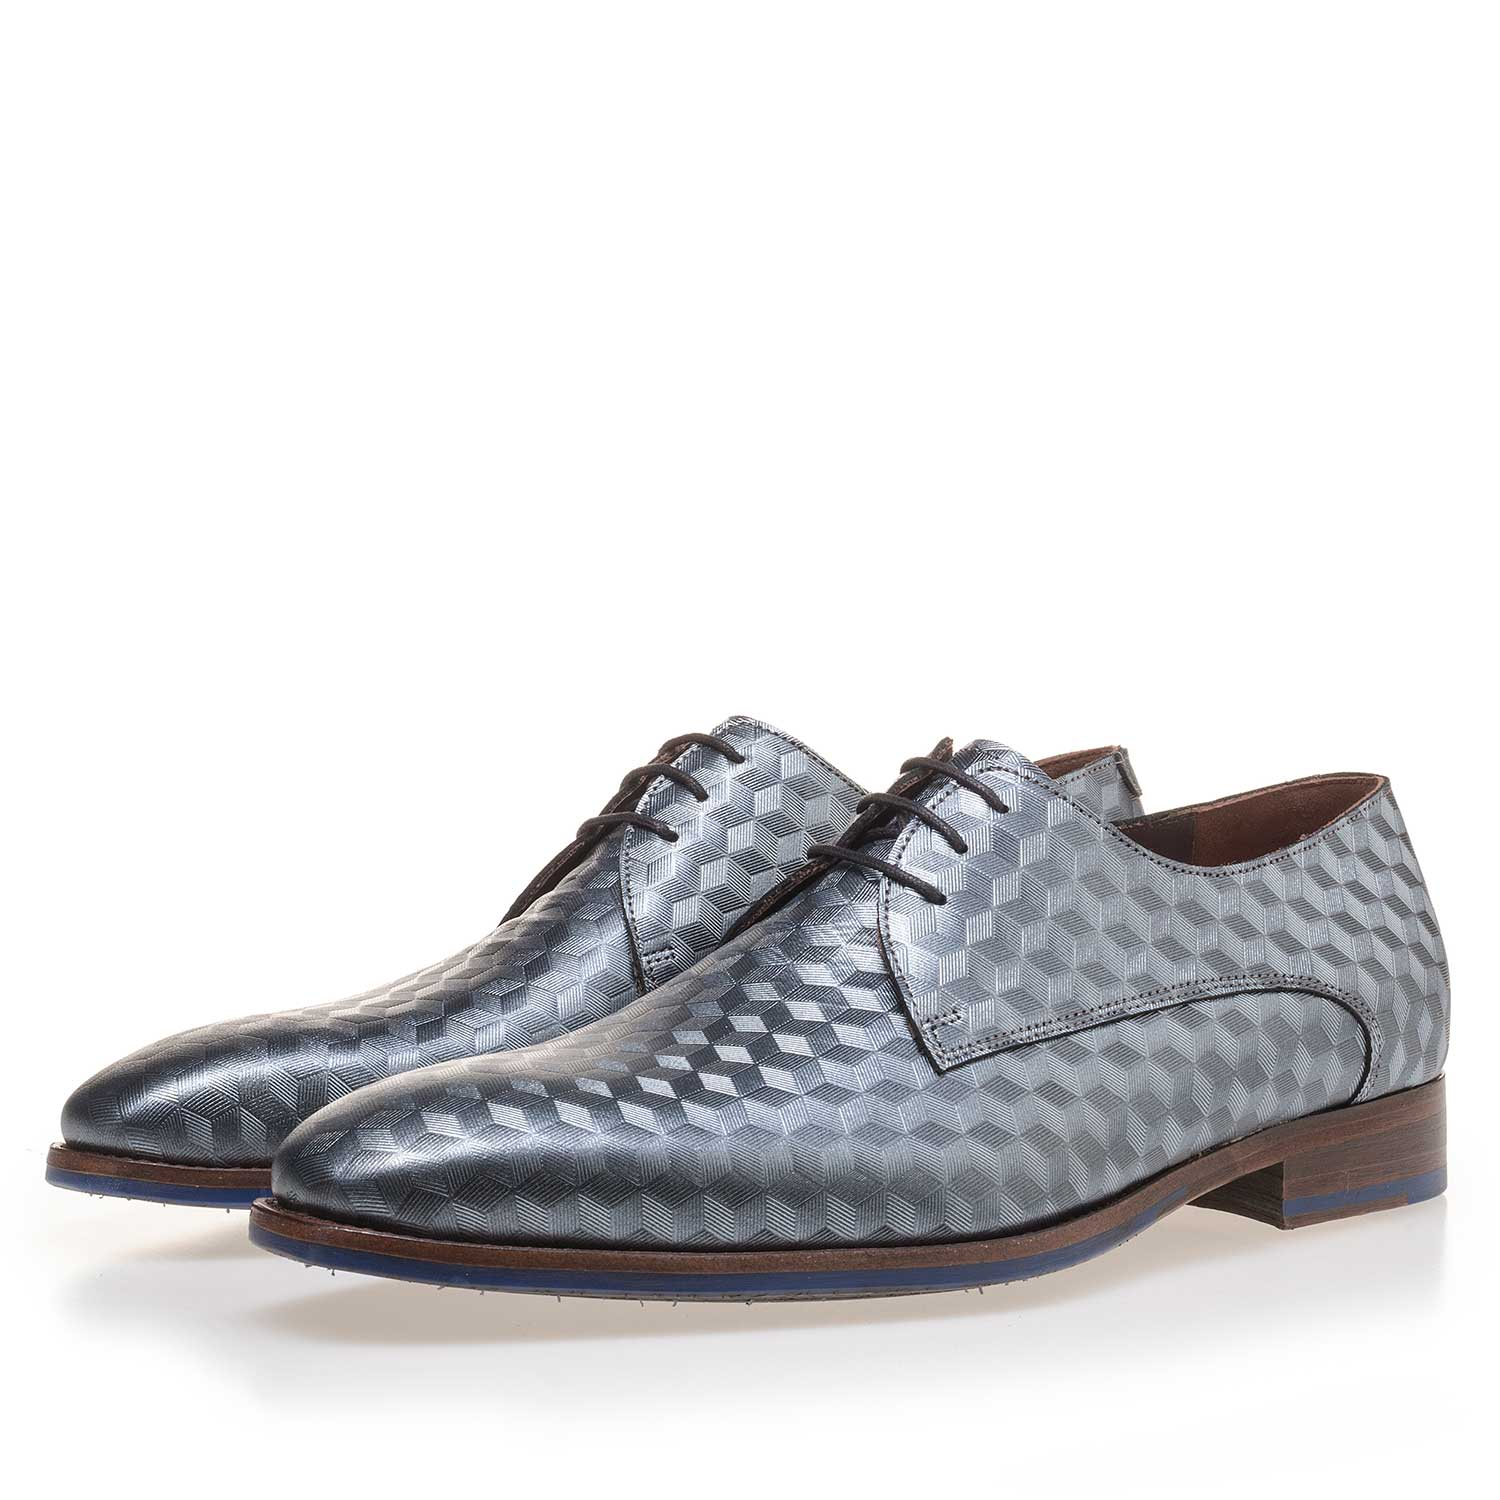 14168/00 - Grey leather lace shoe finished with a hexagon print